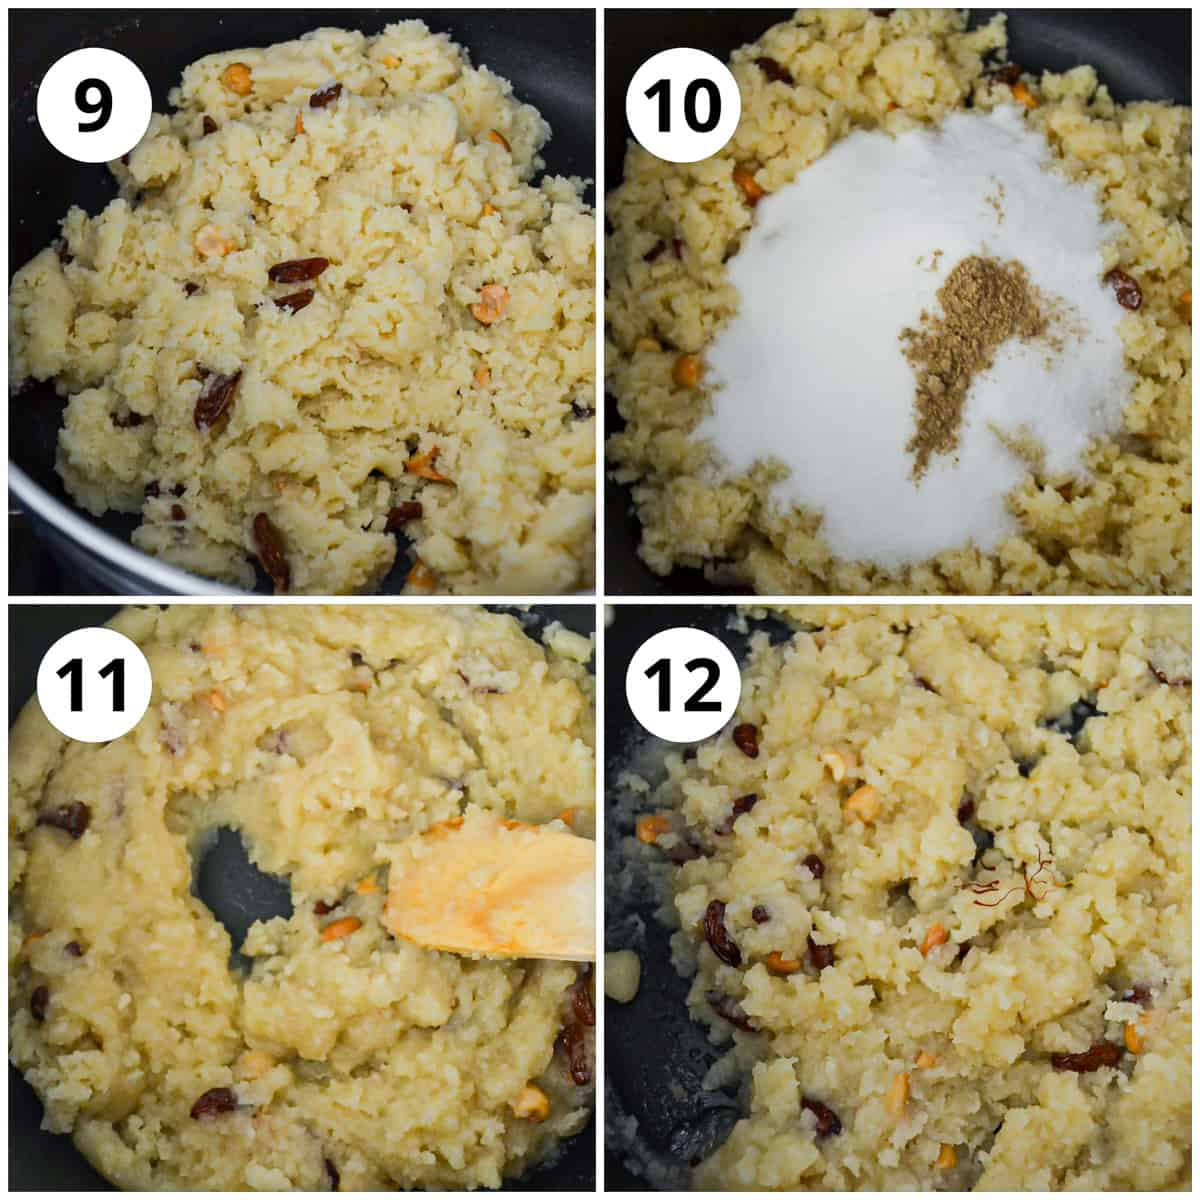 Adding the rava to the milk mixture and finishing the dish